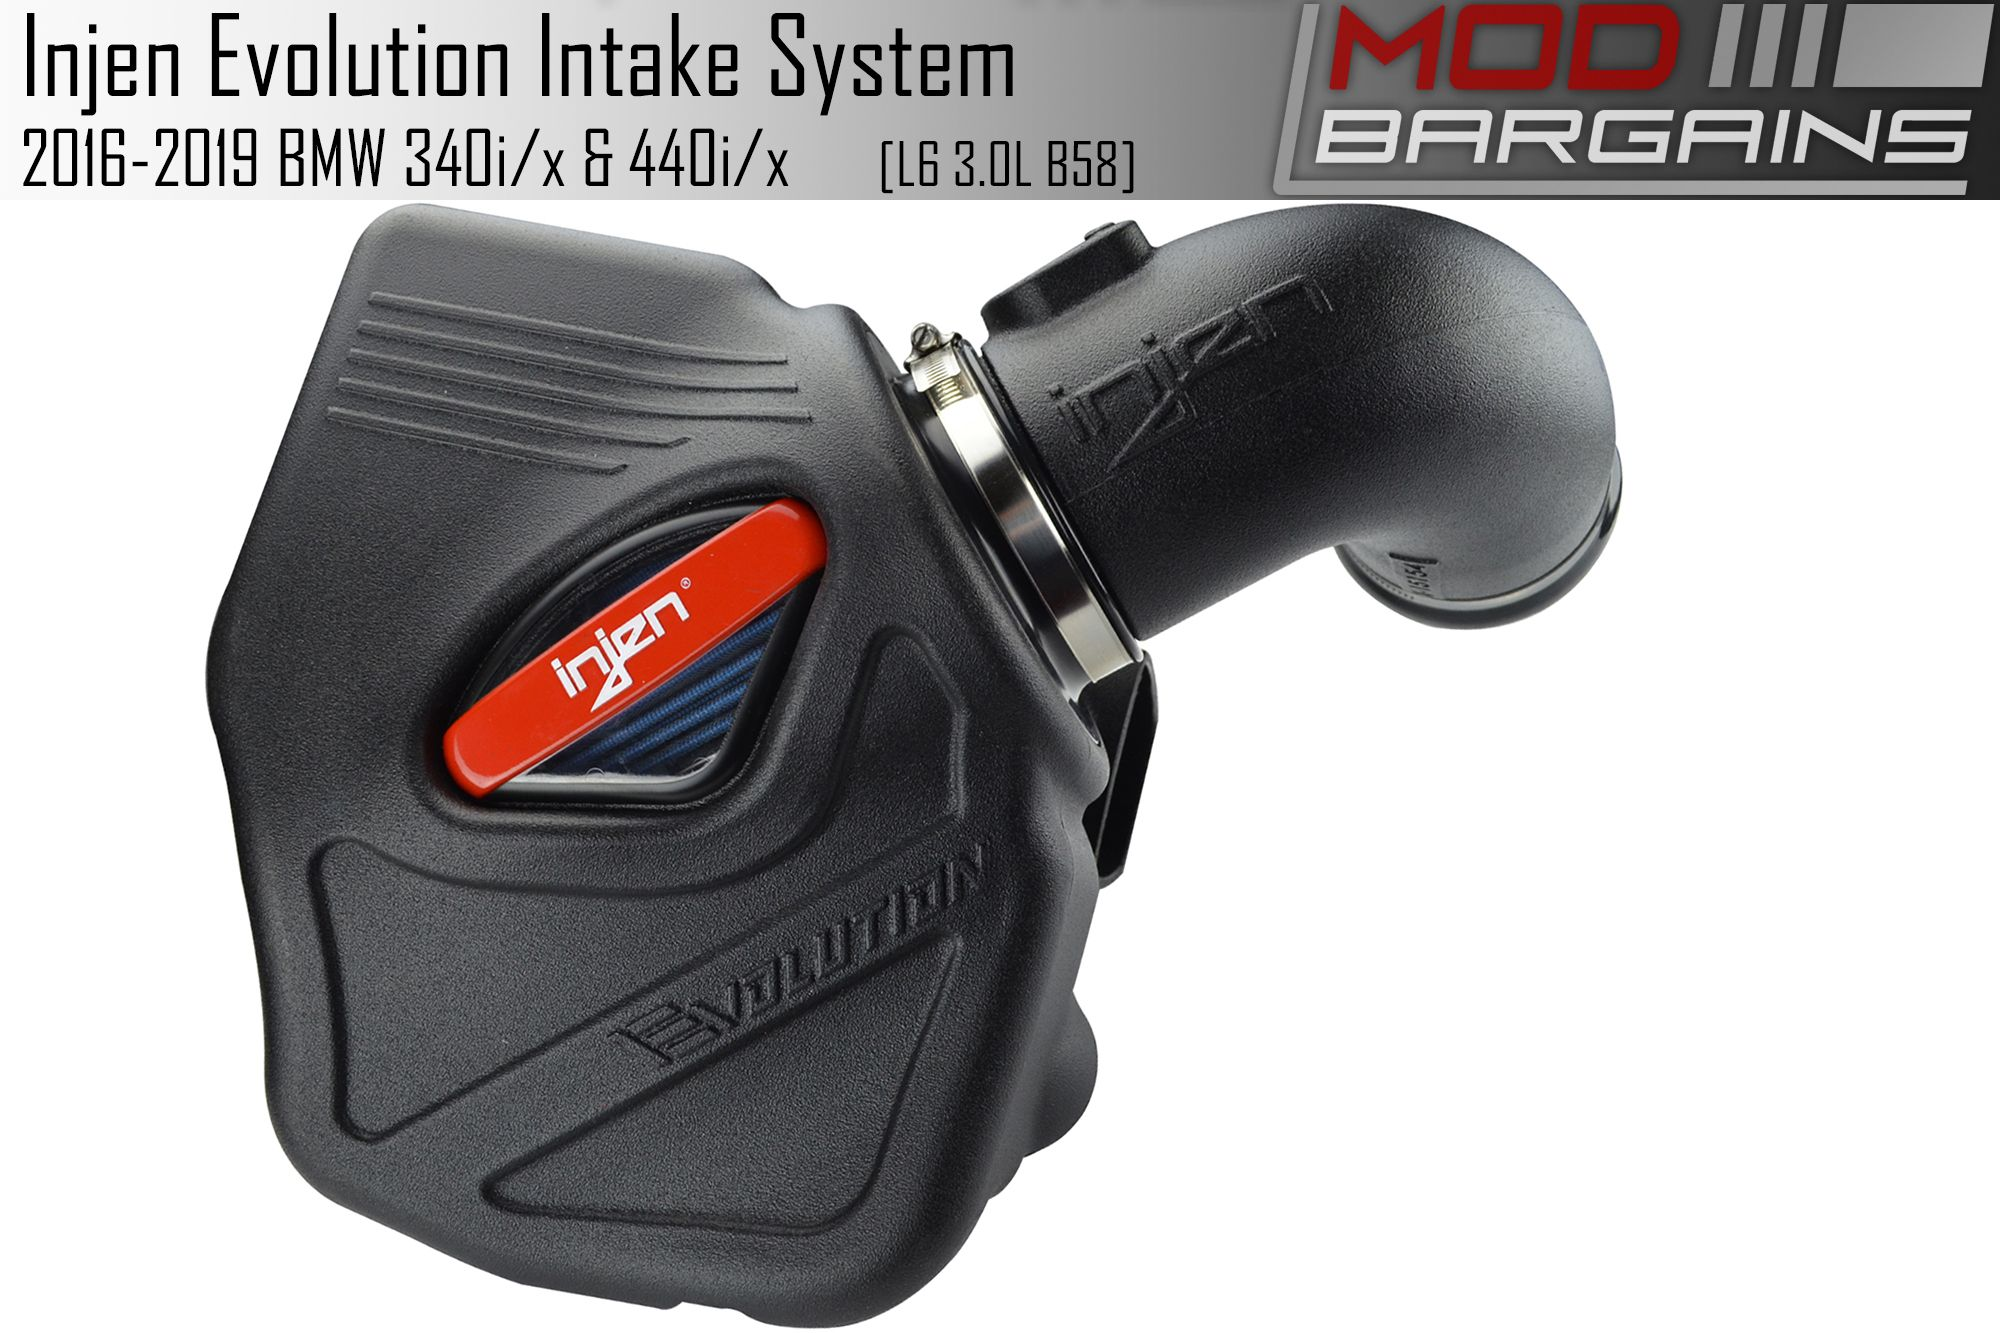 Injen Evolution Cold Air Intake for 2016-2019 BMW 240i, 340i and 440i with B58 3.0T Engine